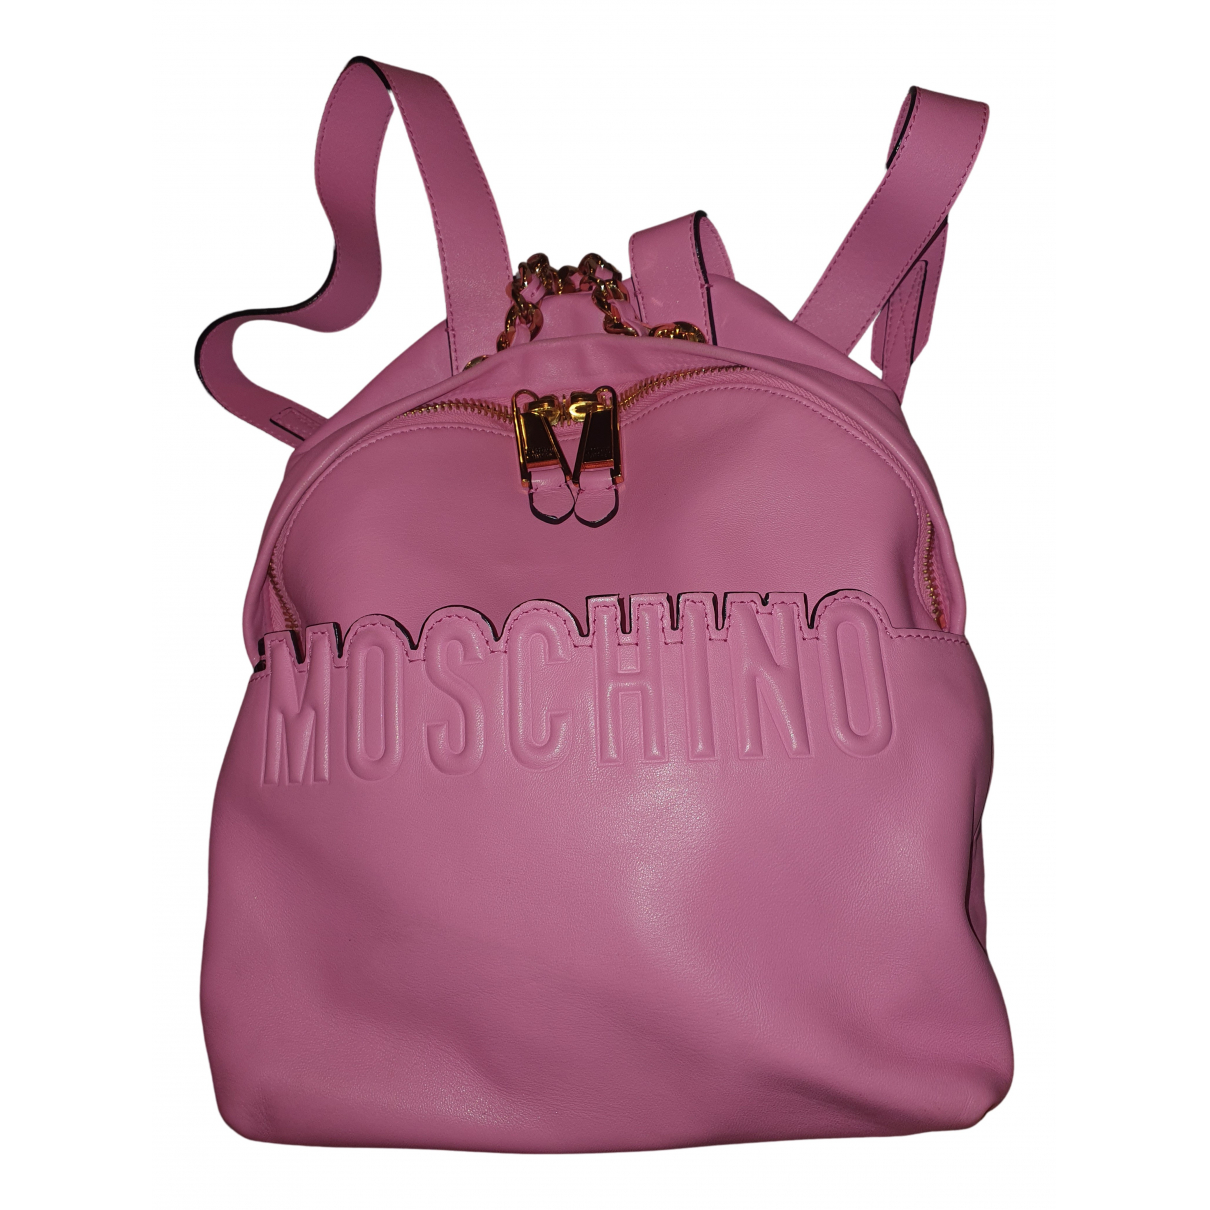 Moschino N Pink Leather backpack for Women N